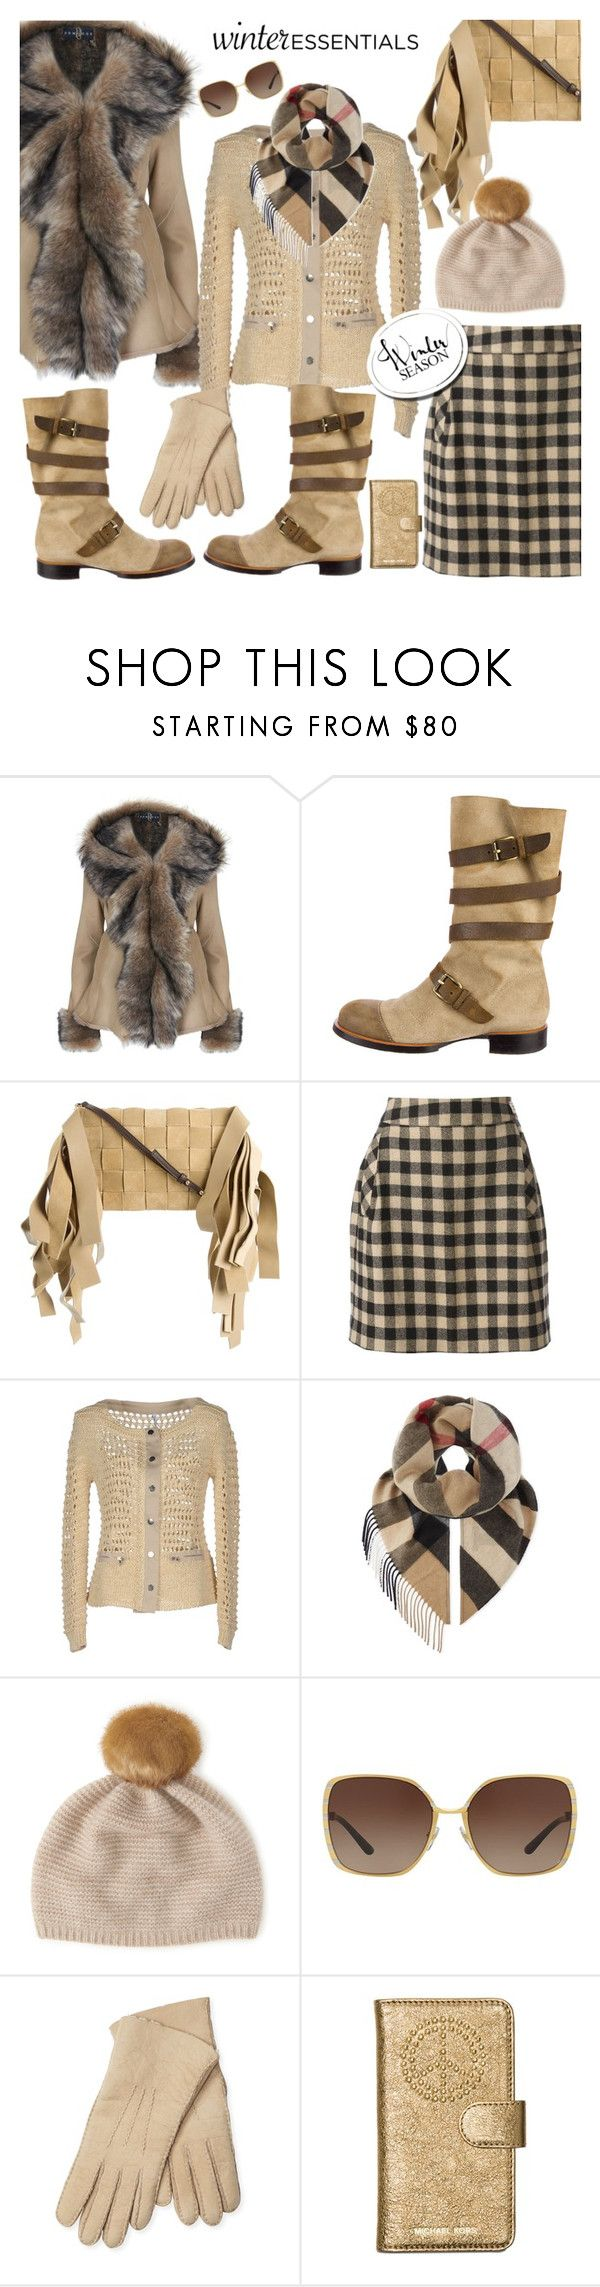 """Winter style"" by hani-bgd ❤ liked on Polyvore featuring Chanel, Loewe, Woolrich, Pianurastudio, Burberry, Henri Bendel, Tory Burch, Maison Fabre, Michael Kors and Winter"